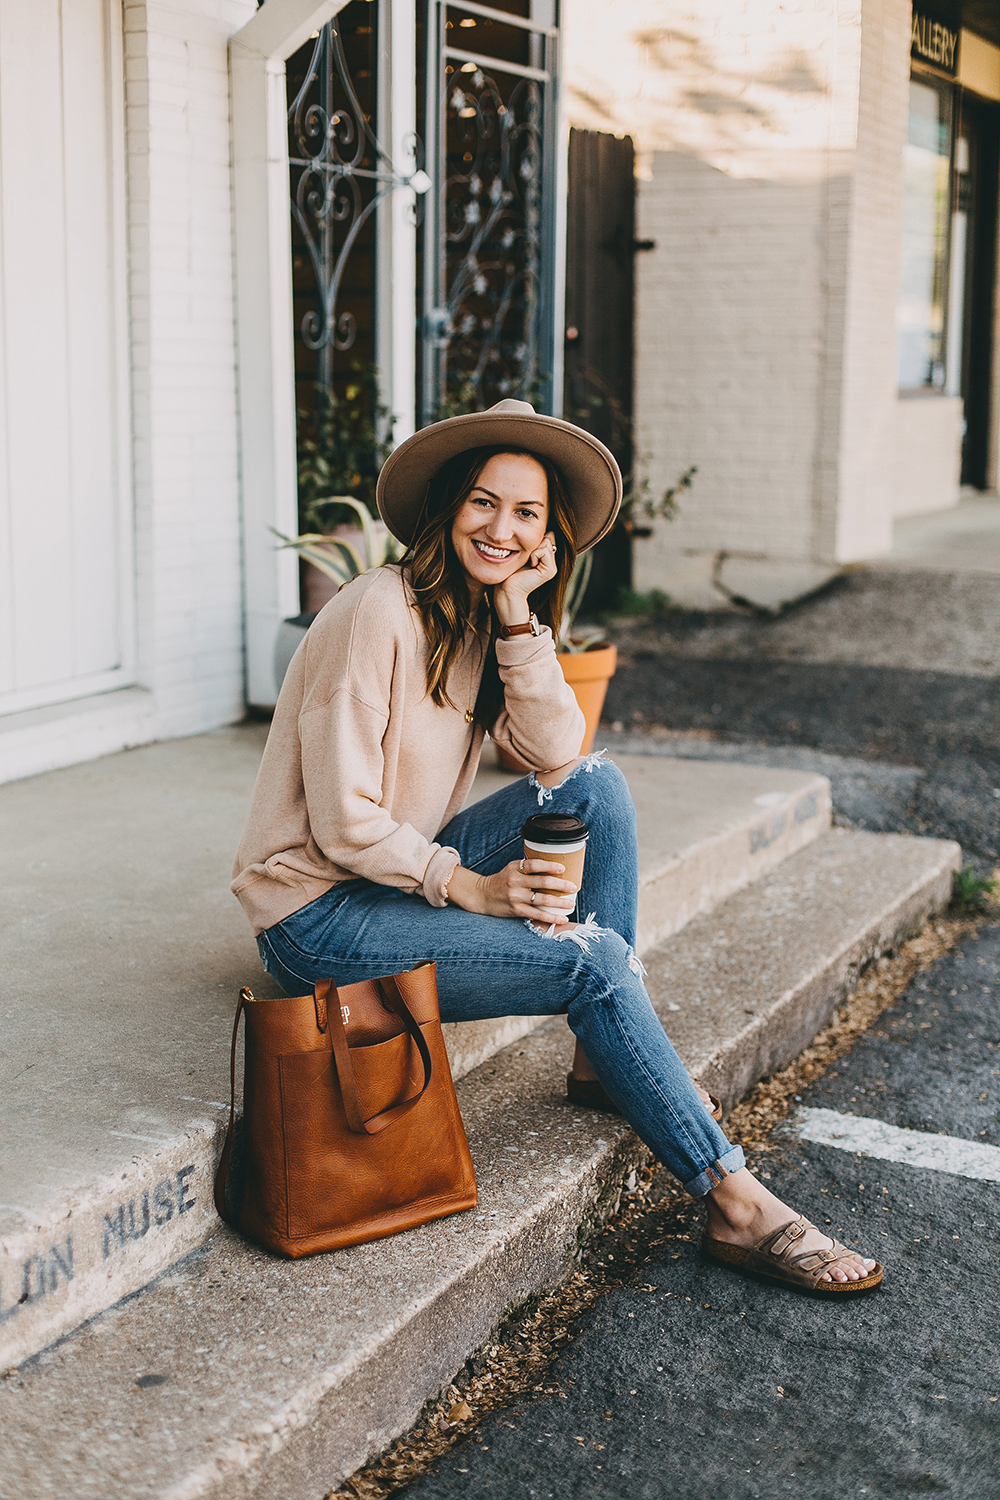 livvyland-blog-olivia-watson-austin-texas-fashion-blogger-madewell-peach-sweatshirt-medium-transport-tote-levis-501-jeans-7